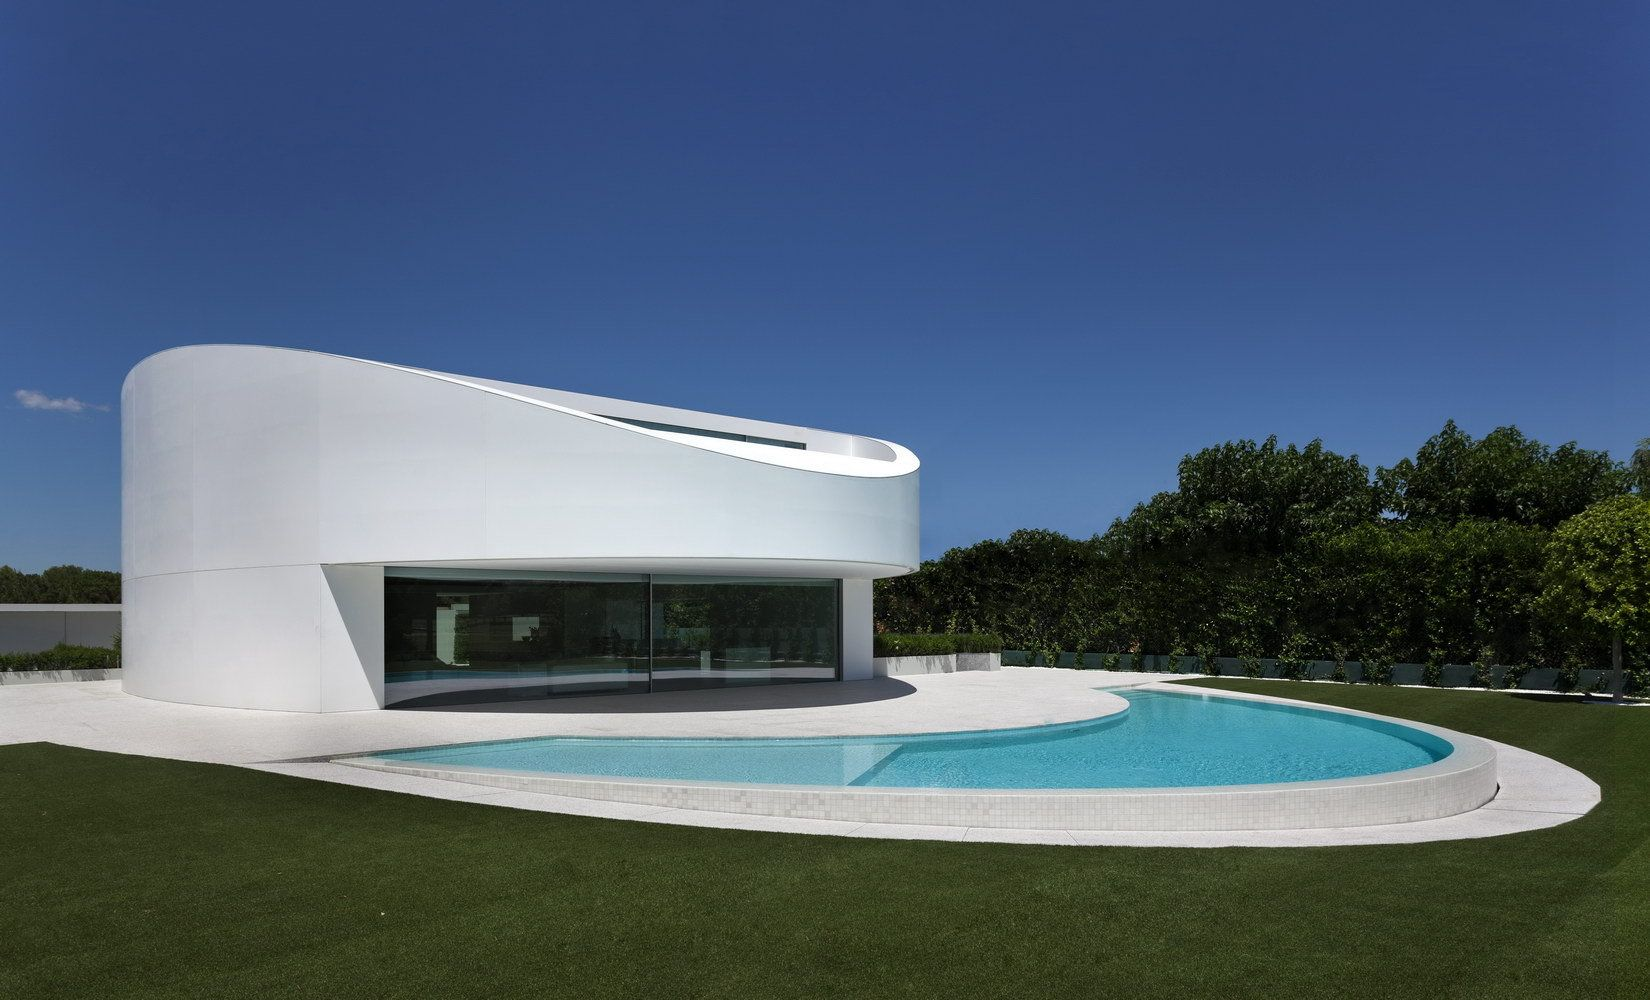 Fran Silvestre Arquitectos Completed The Design And Development Of Balint House A Modern Elliptical Shaped Residence In Valencia Spain